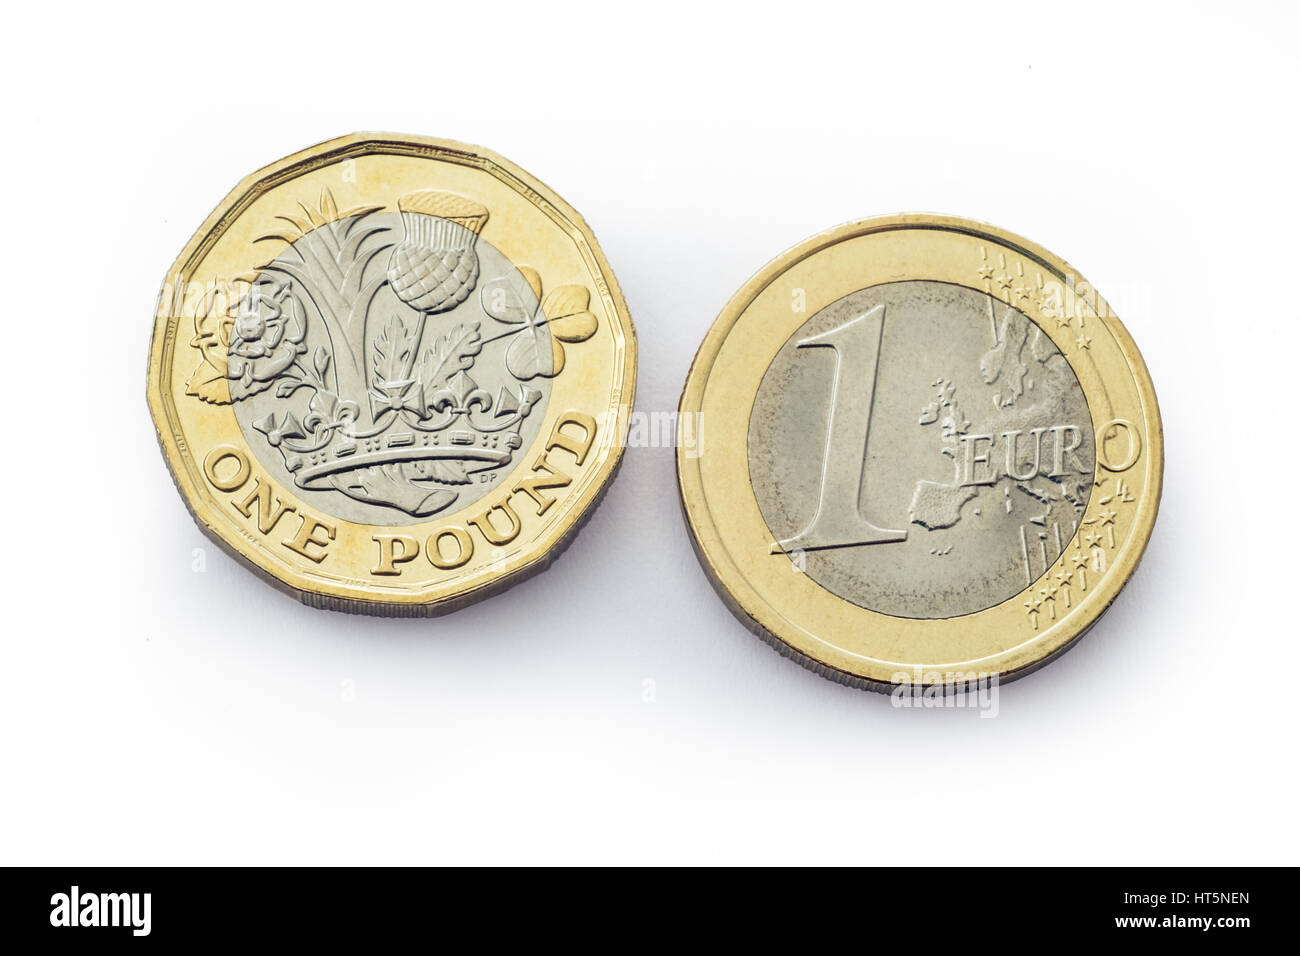 New One Pound Coin Photos New One Pound Coin Images Alamy